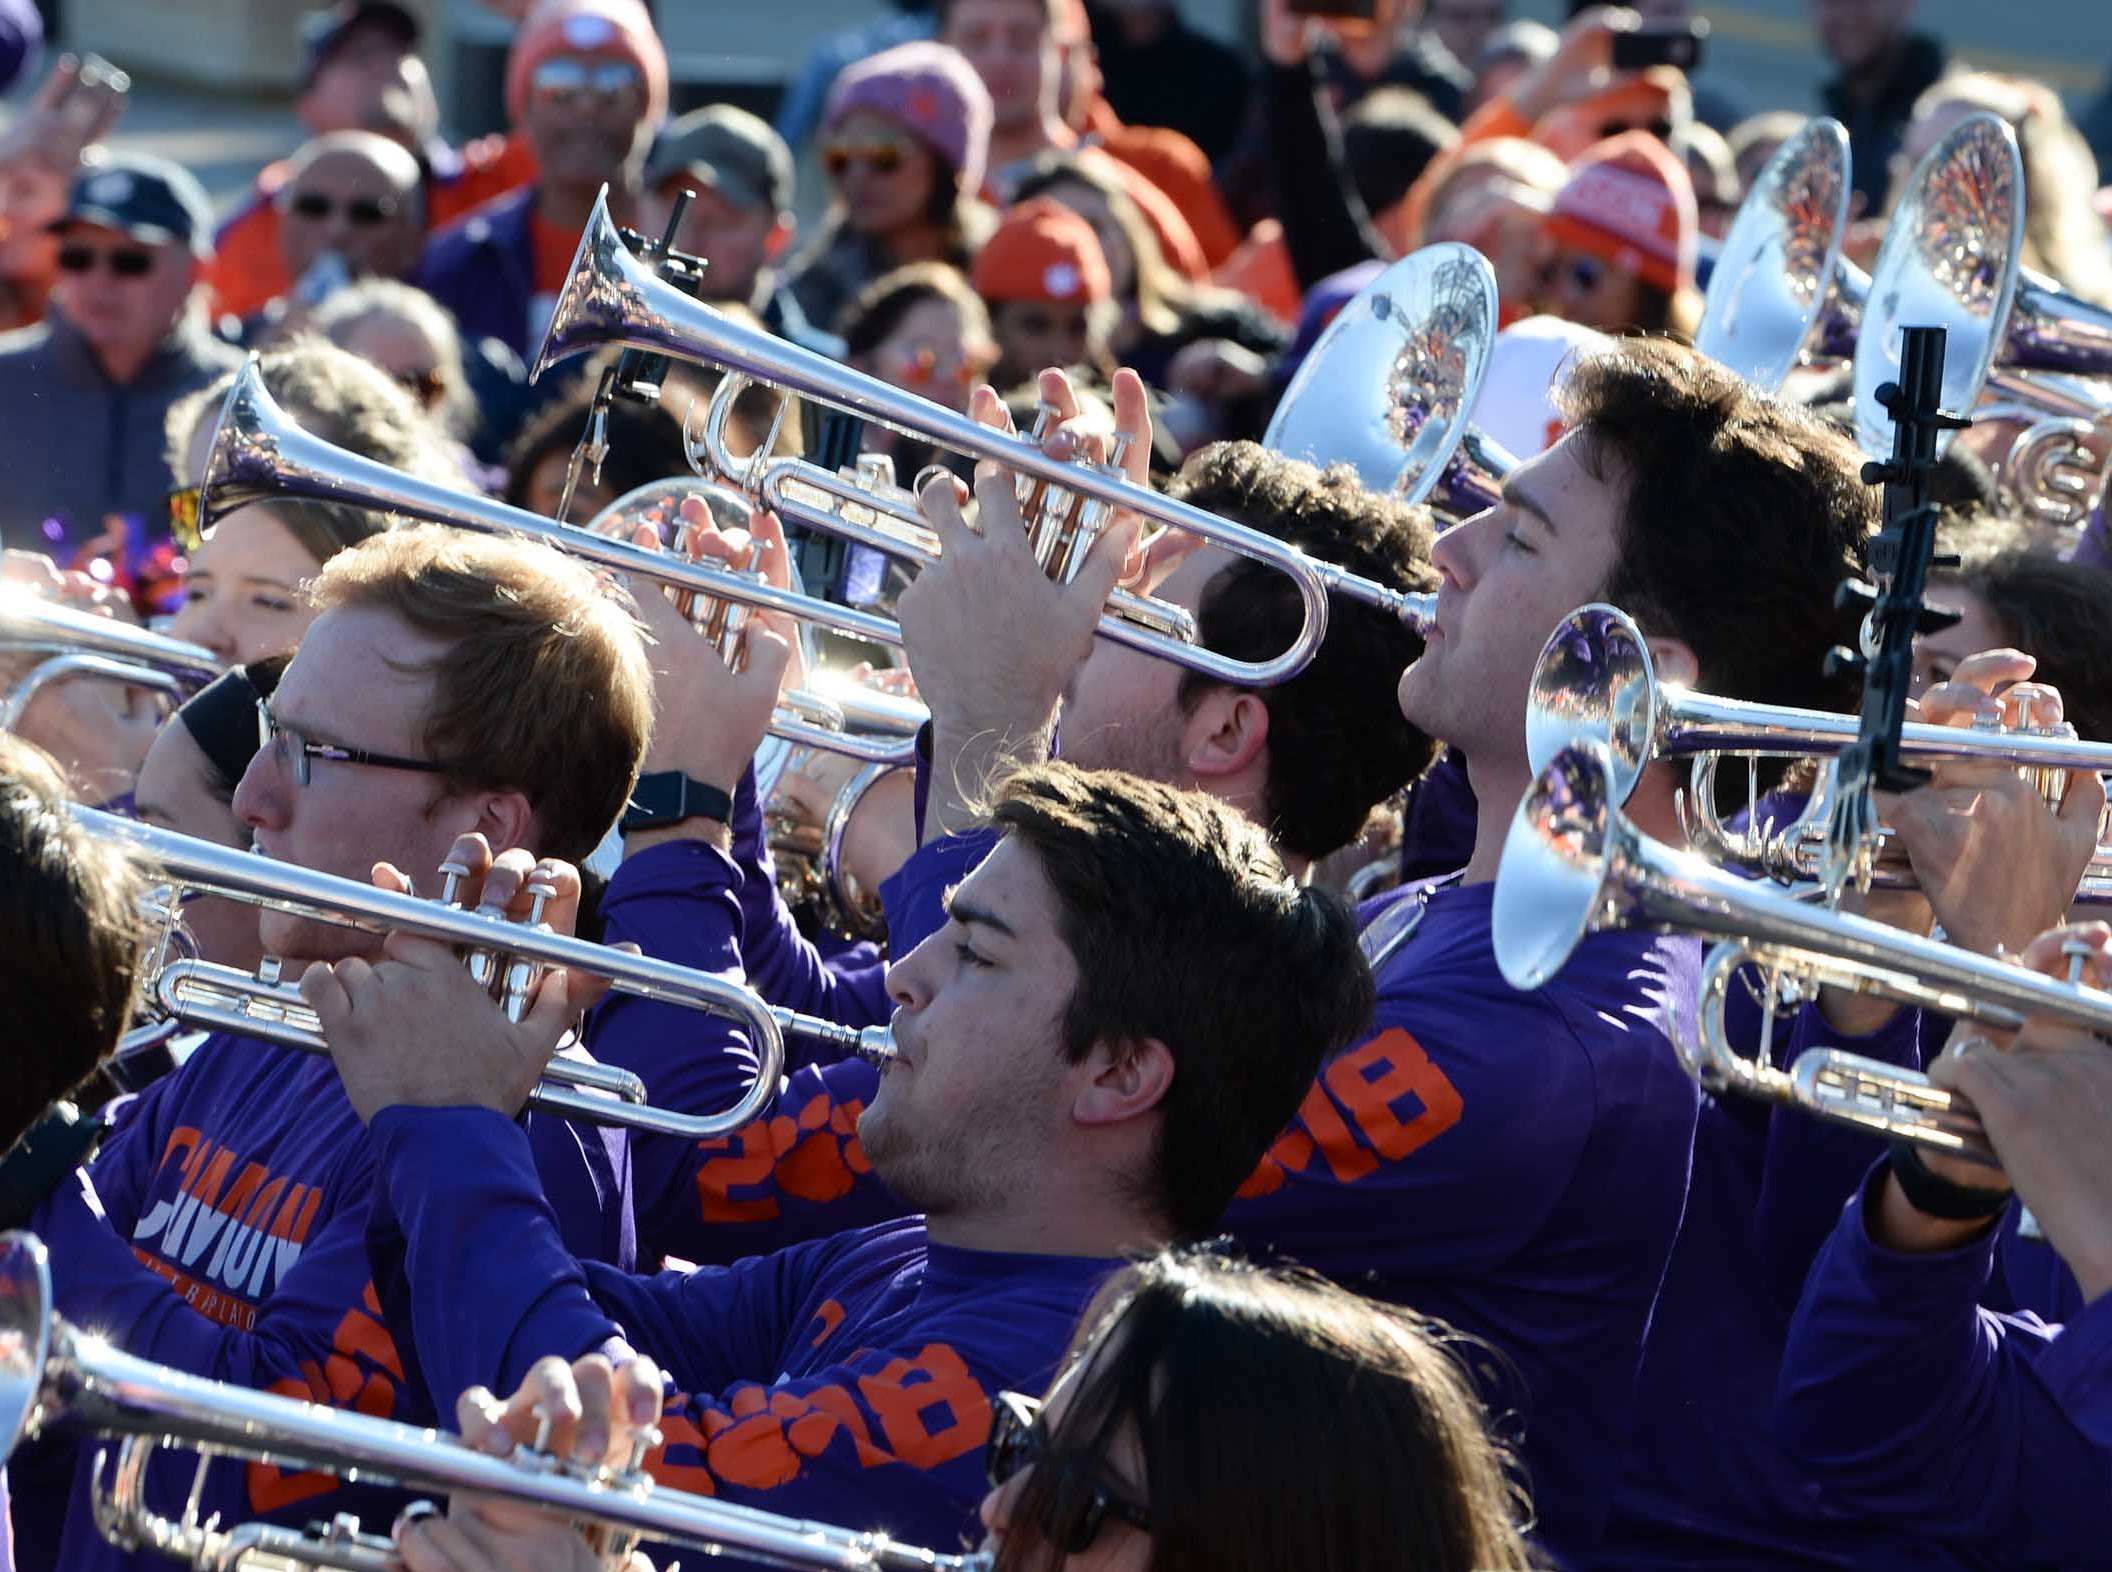 Clemson and Notre Dame Marching Bands, fans, cheerleaders, Rally Cats, and twirlers join in at the Battle of the Bands competition in Arlington, Texas December 28, 2018.